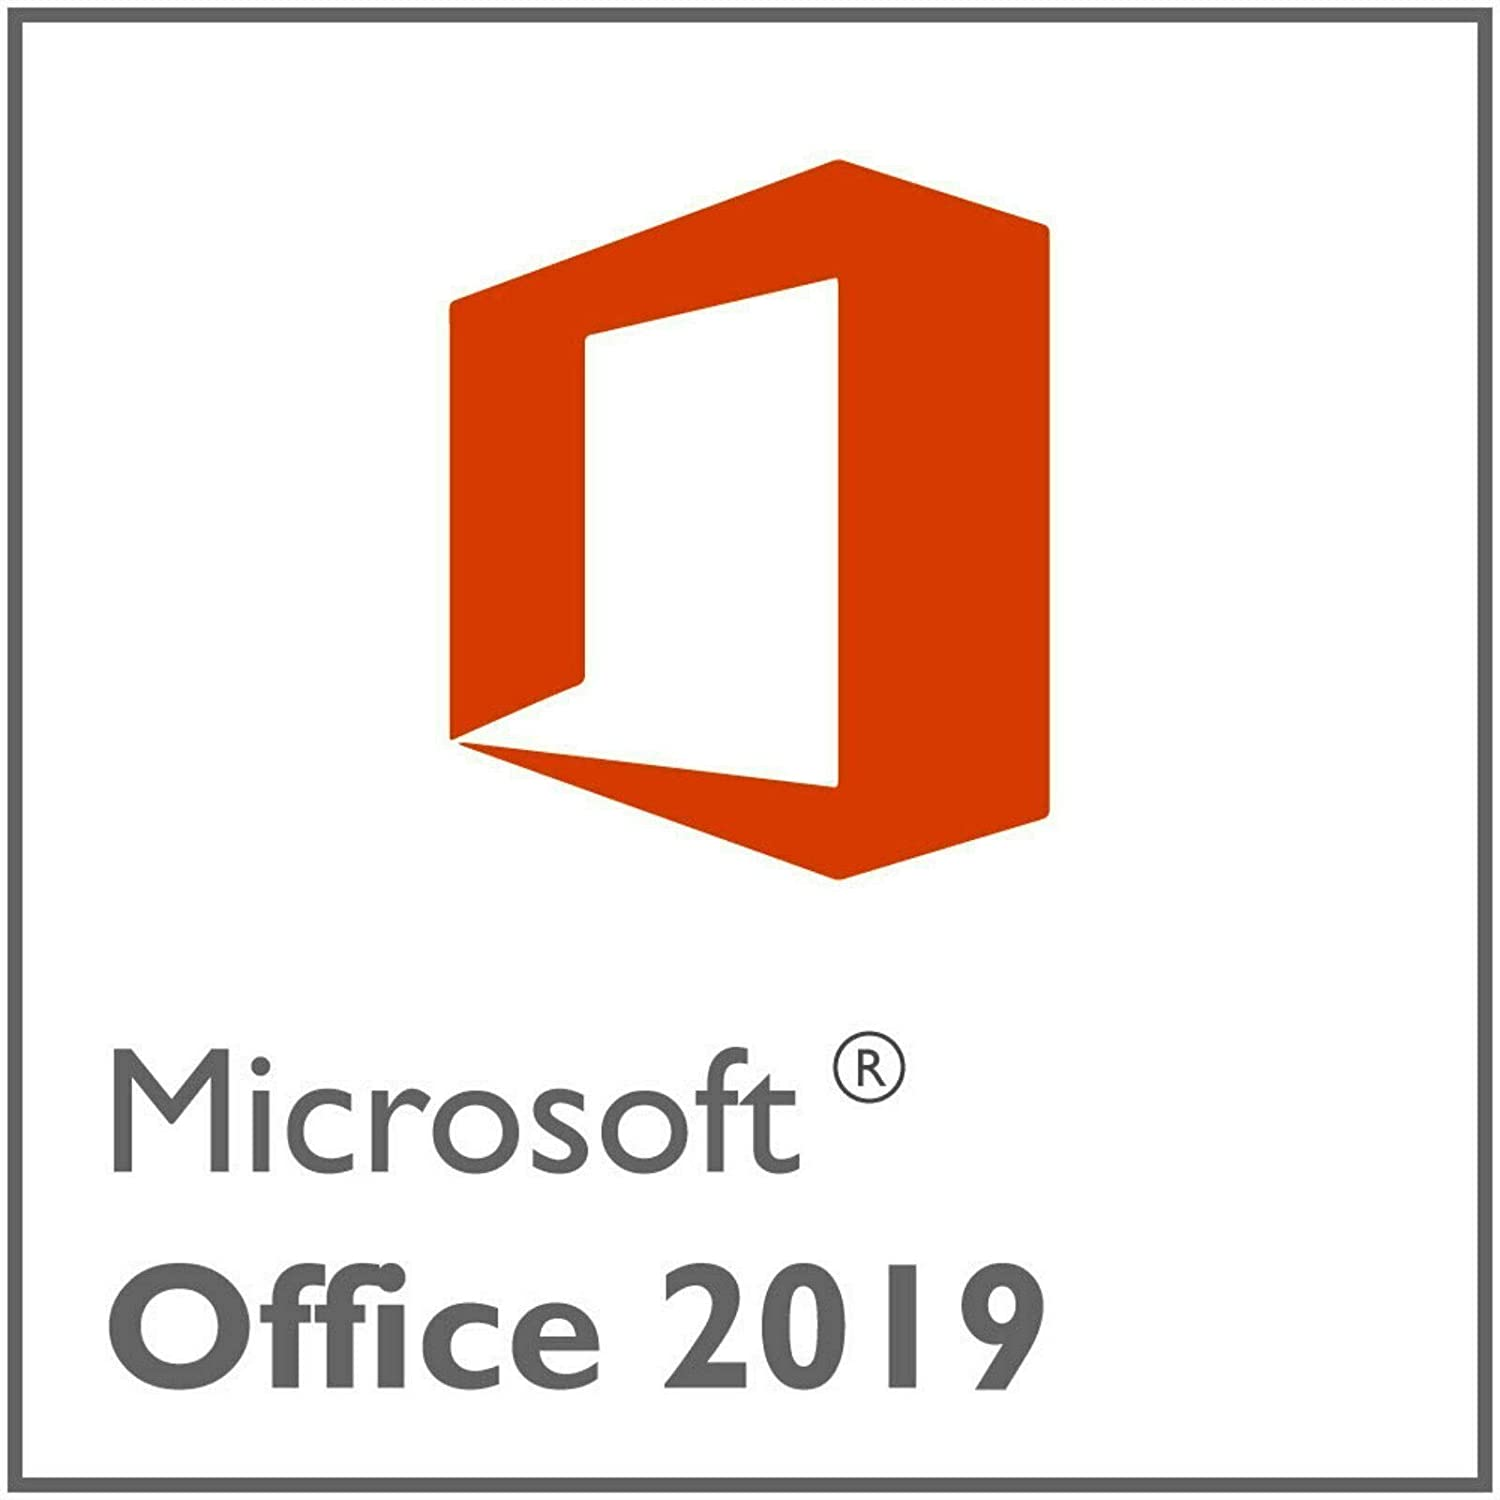 Microsoft Office 2019 Home & Business 1 Licencia(s) Plurilingüe - Suites de programas (1 Licencia(s), Plurilingüe, 4000 MB, 2048 MB, 1,6 MHz): Amazon.es: Informática